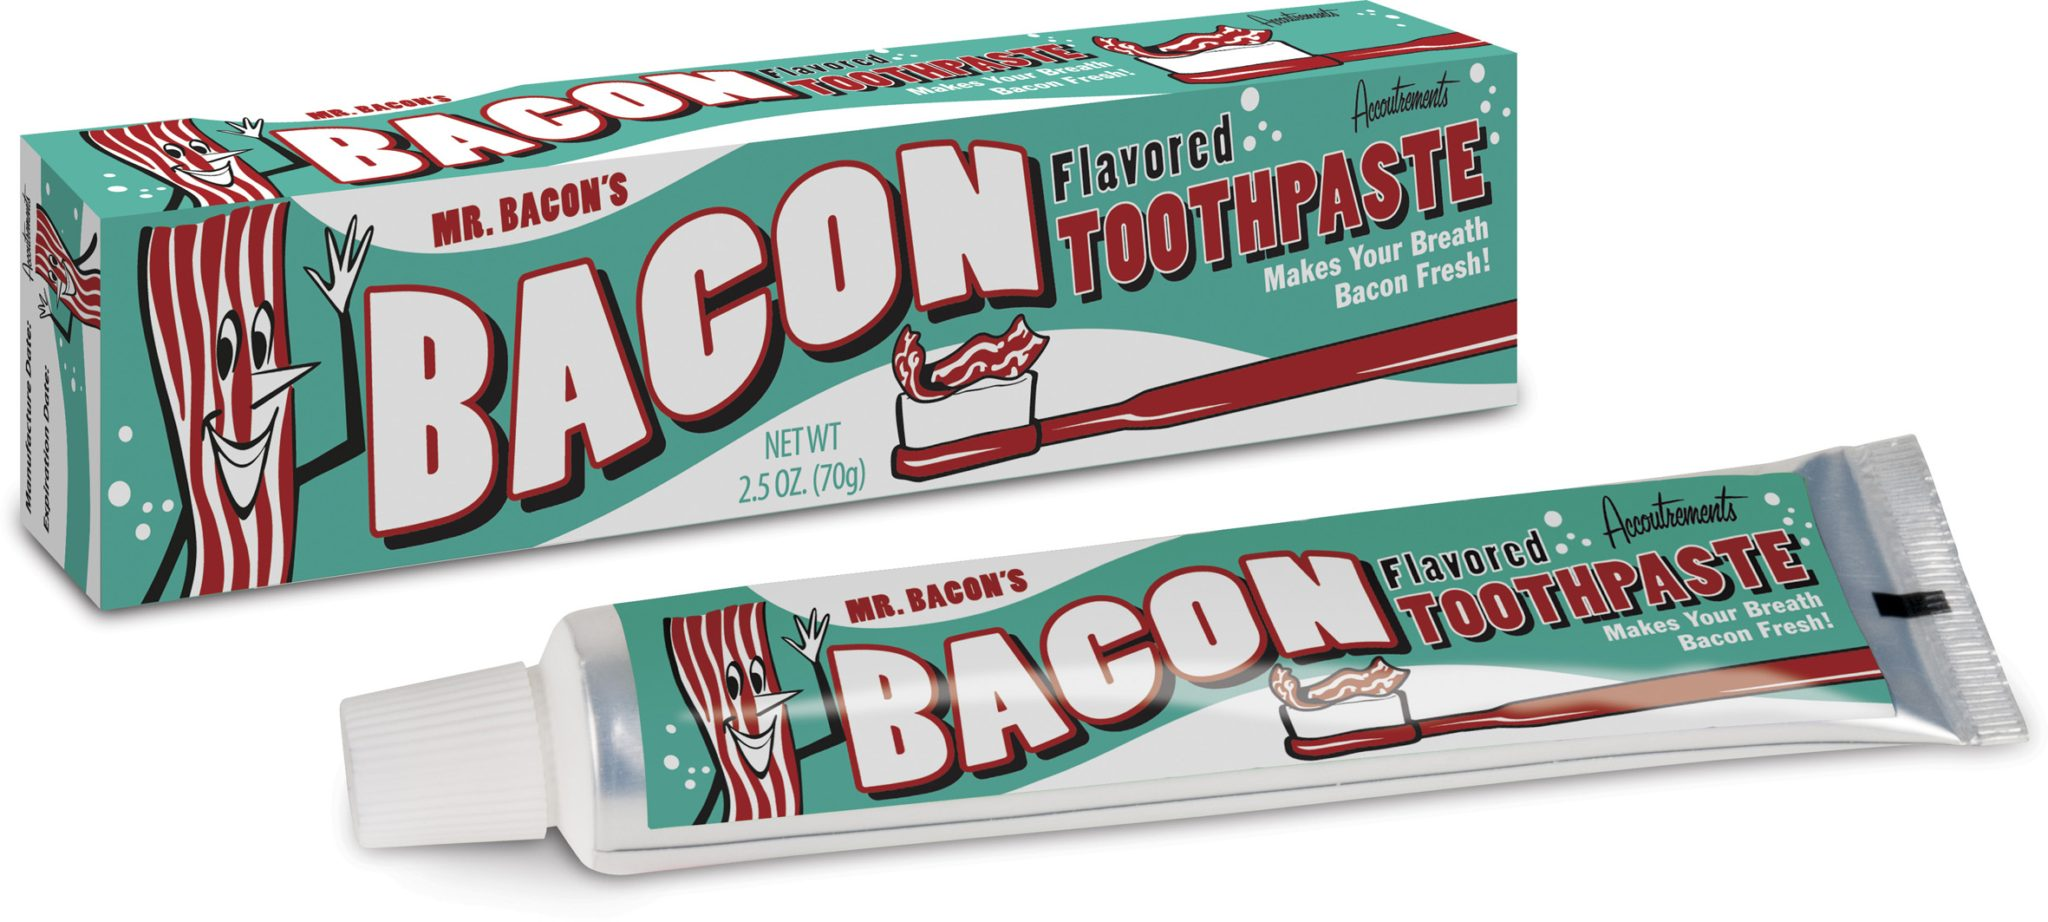 weird toothpastes-bacon flavored